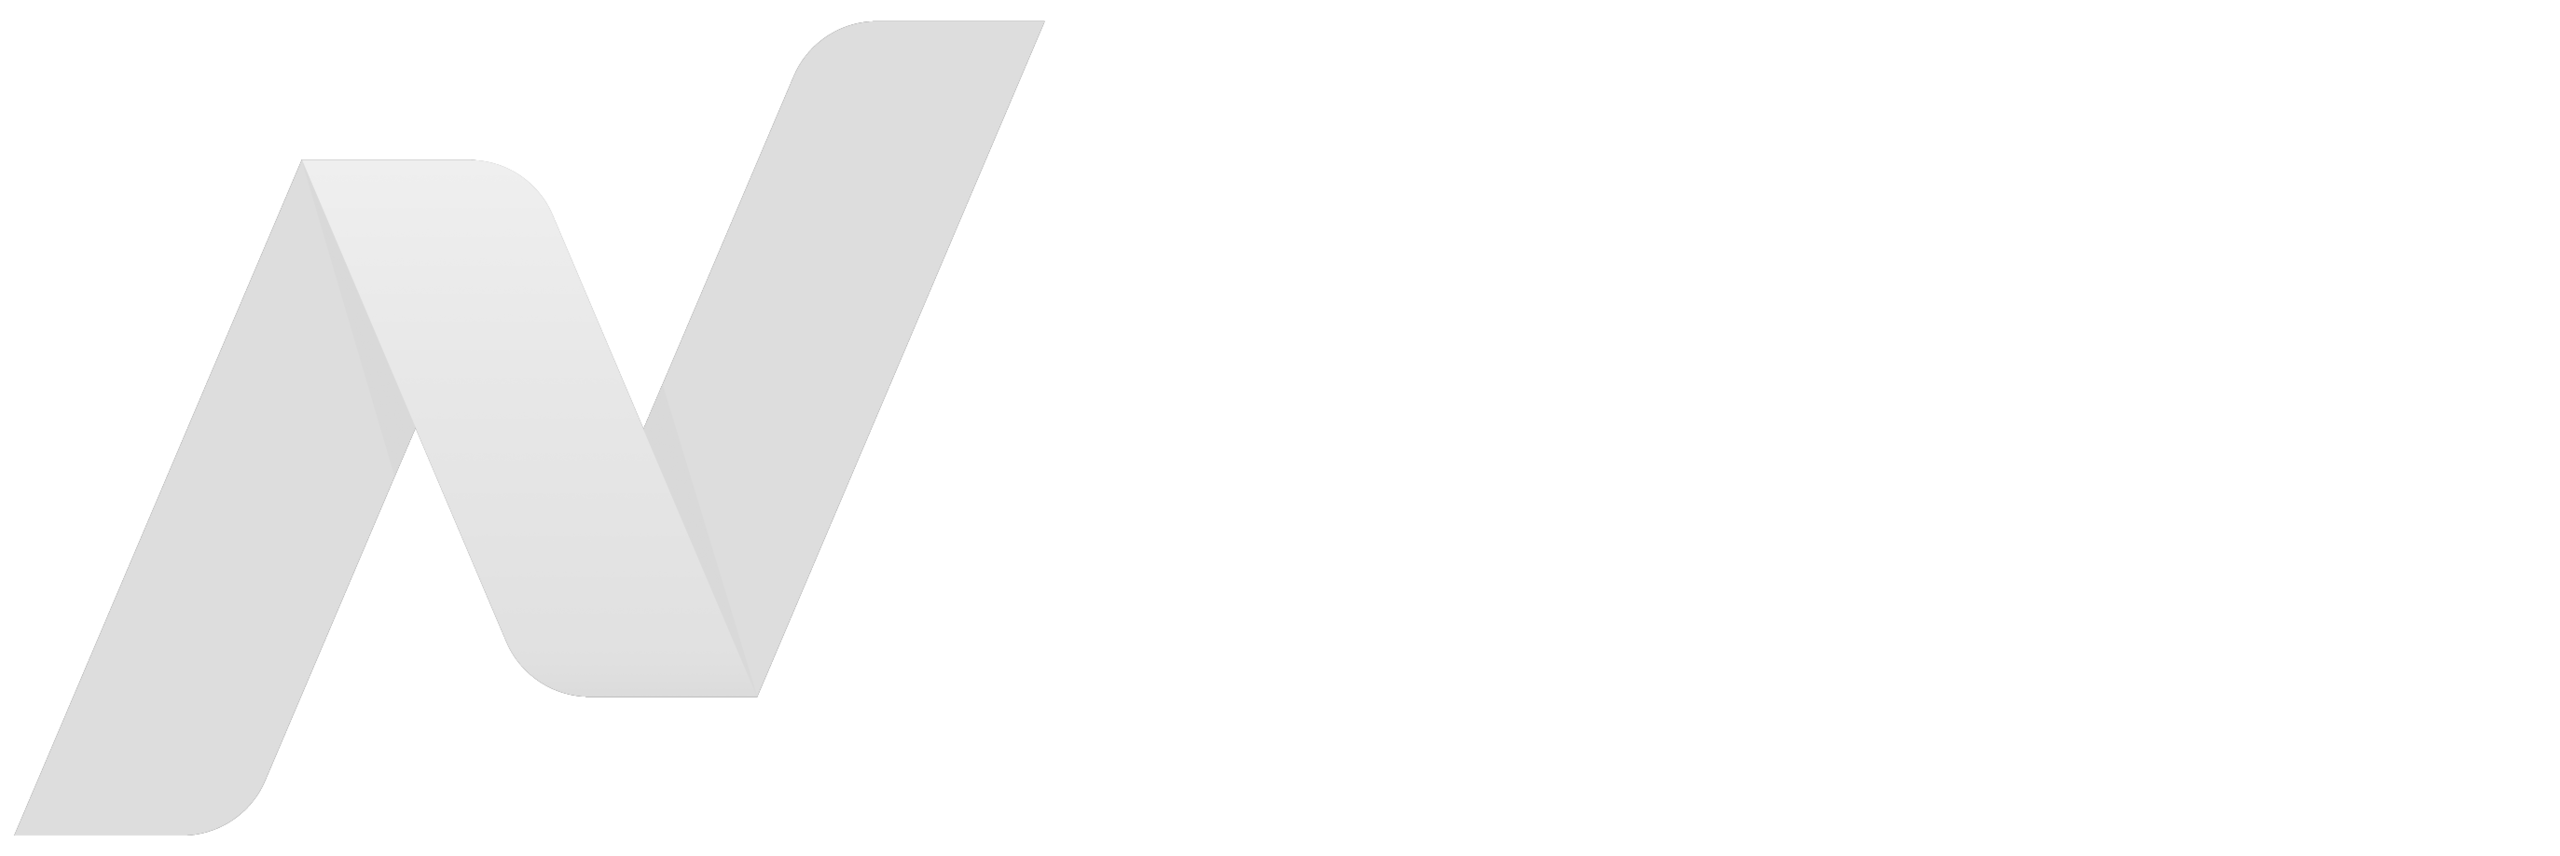 Featured in Nutritional Coaching Institute